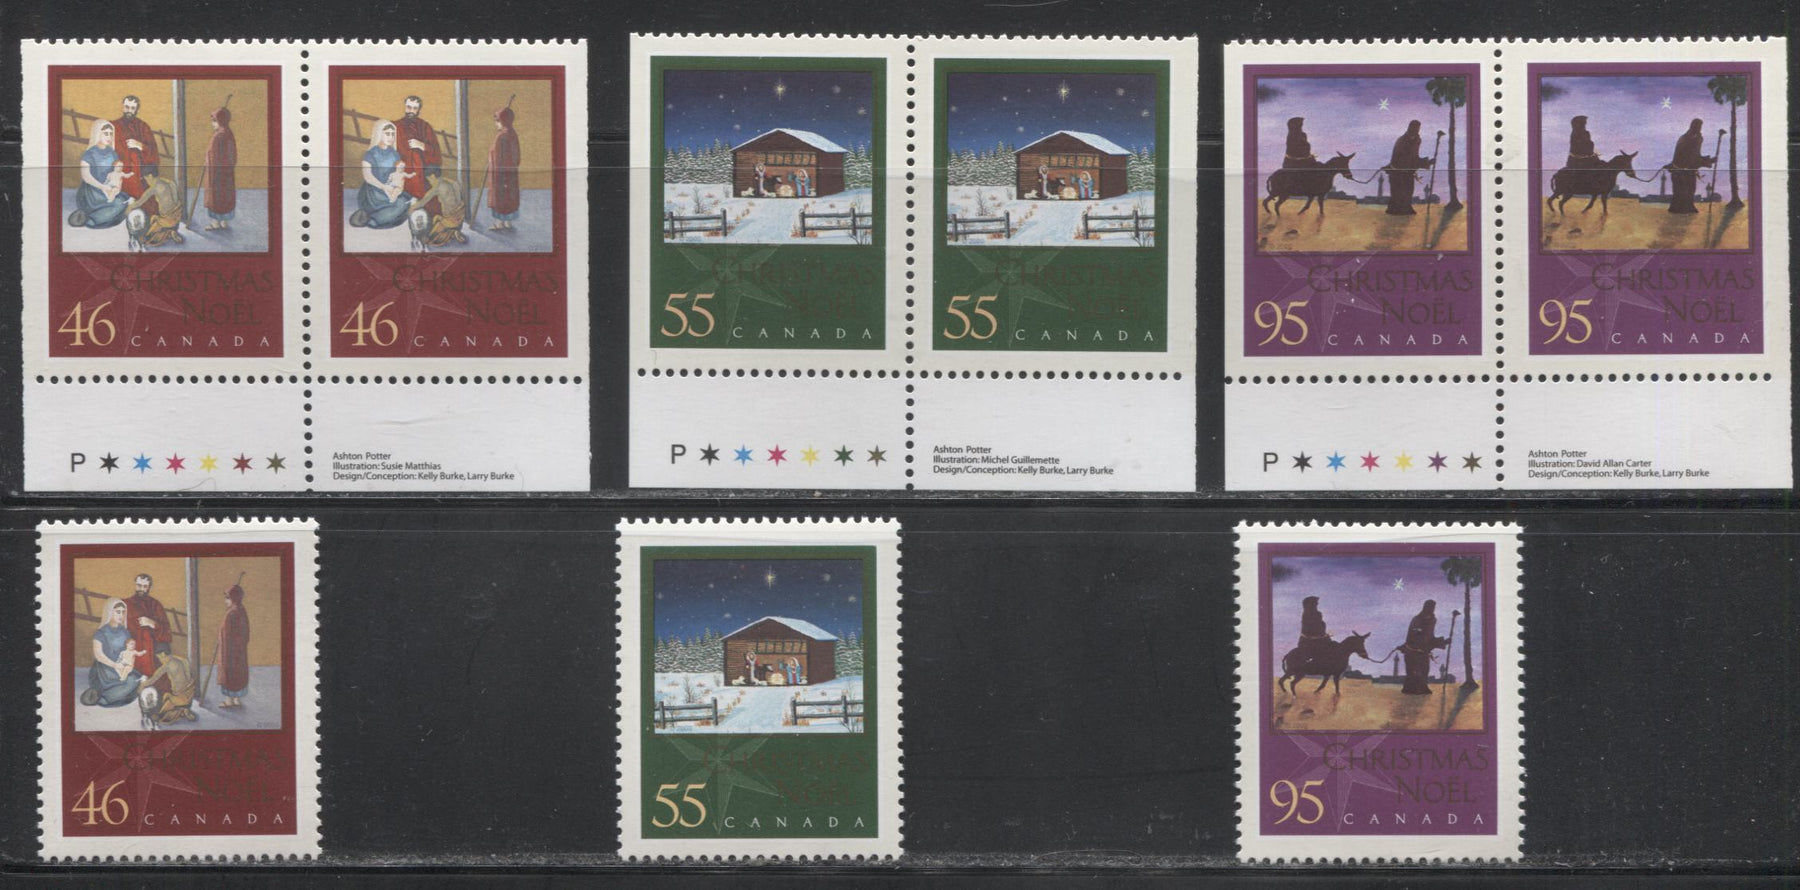 Canada #1873-1875as 46c-95c Multicoloured, 2000 Christmas Issue, a VFNH Complete Set of Sheet Stamps and Booklet Pairs.